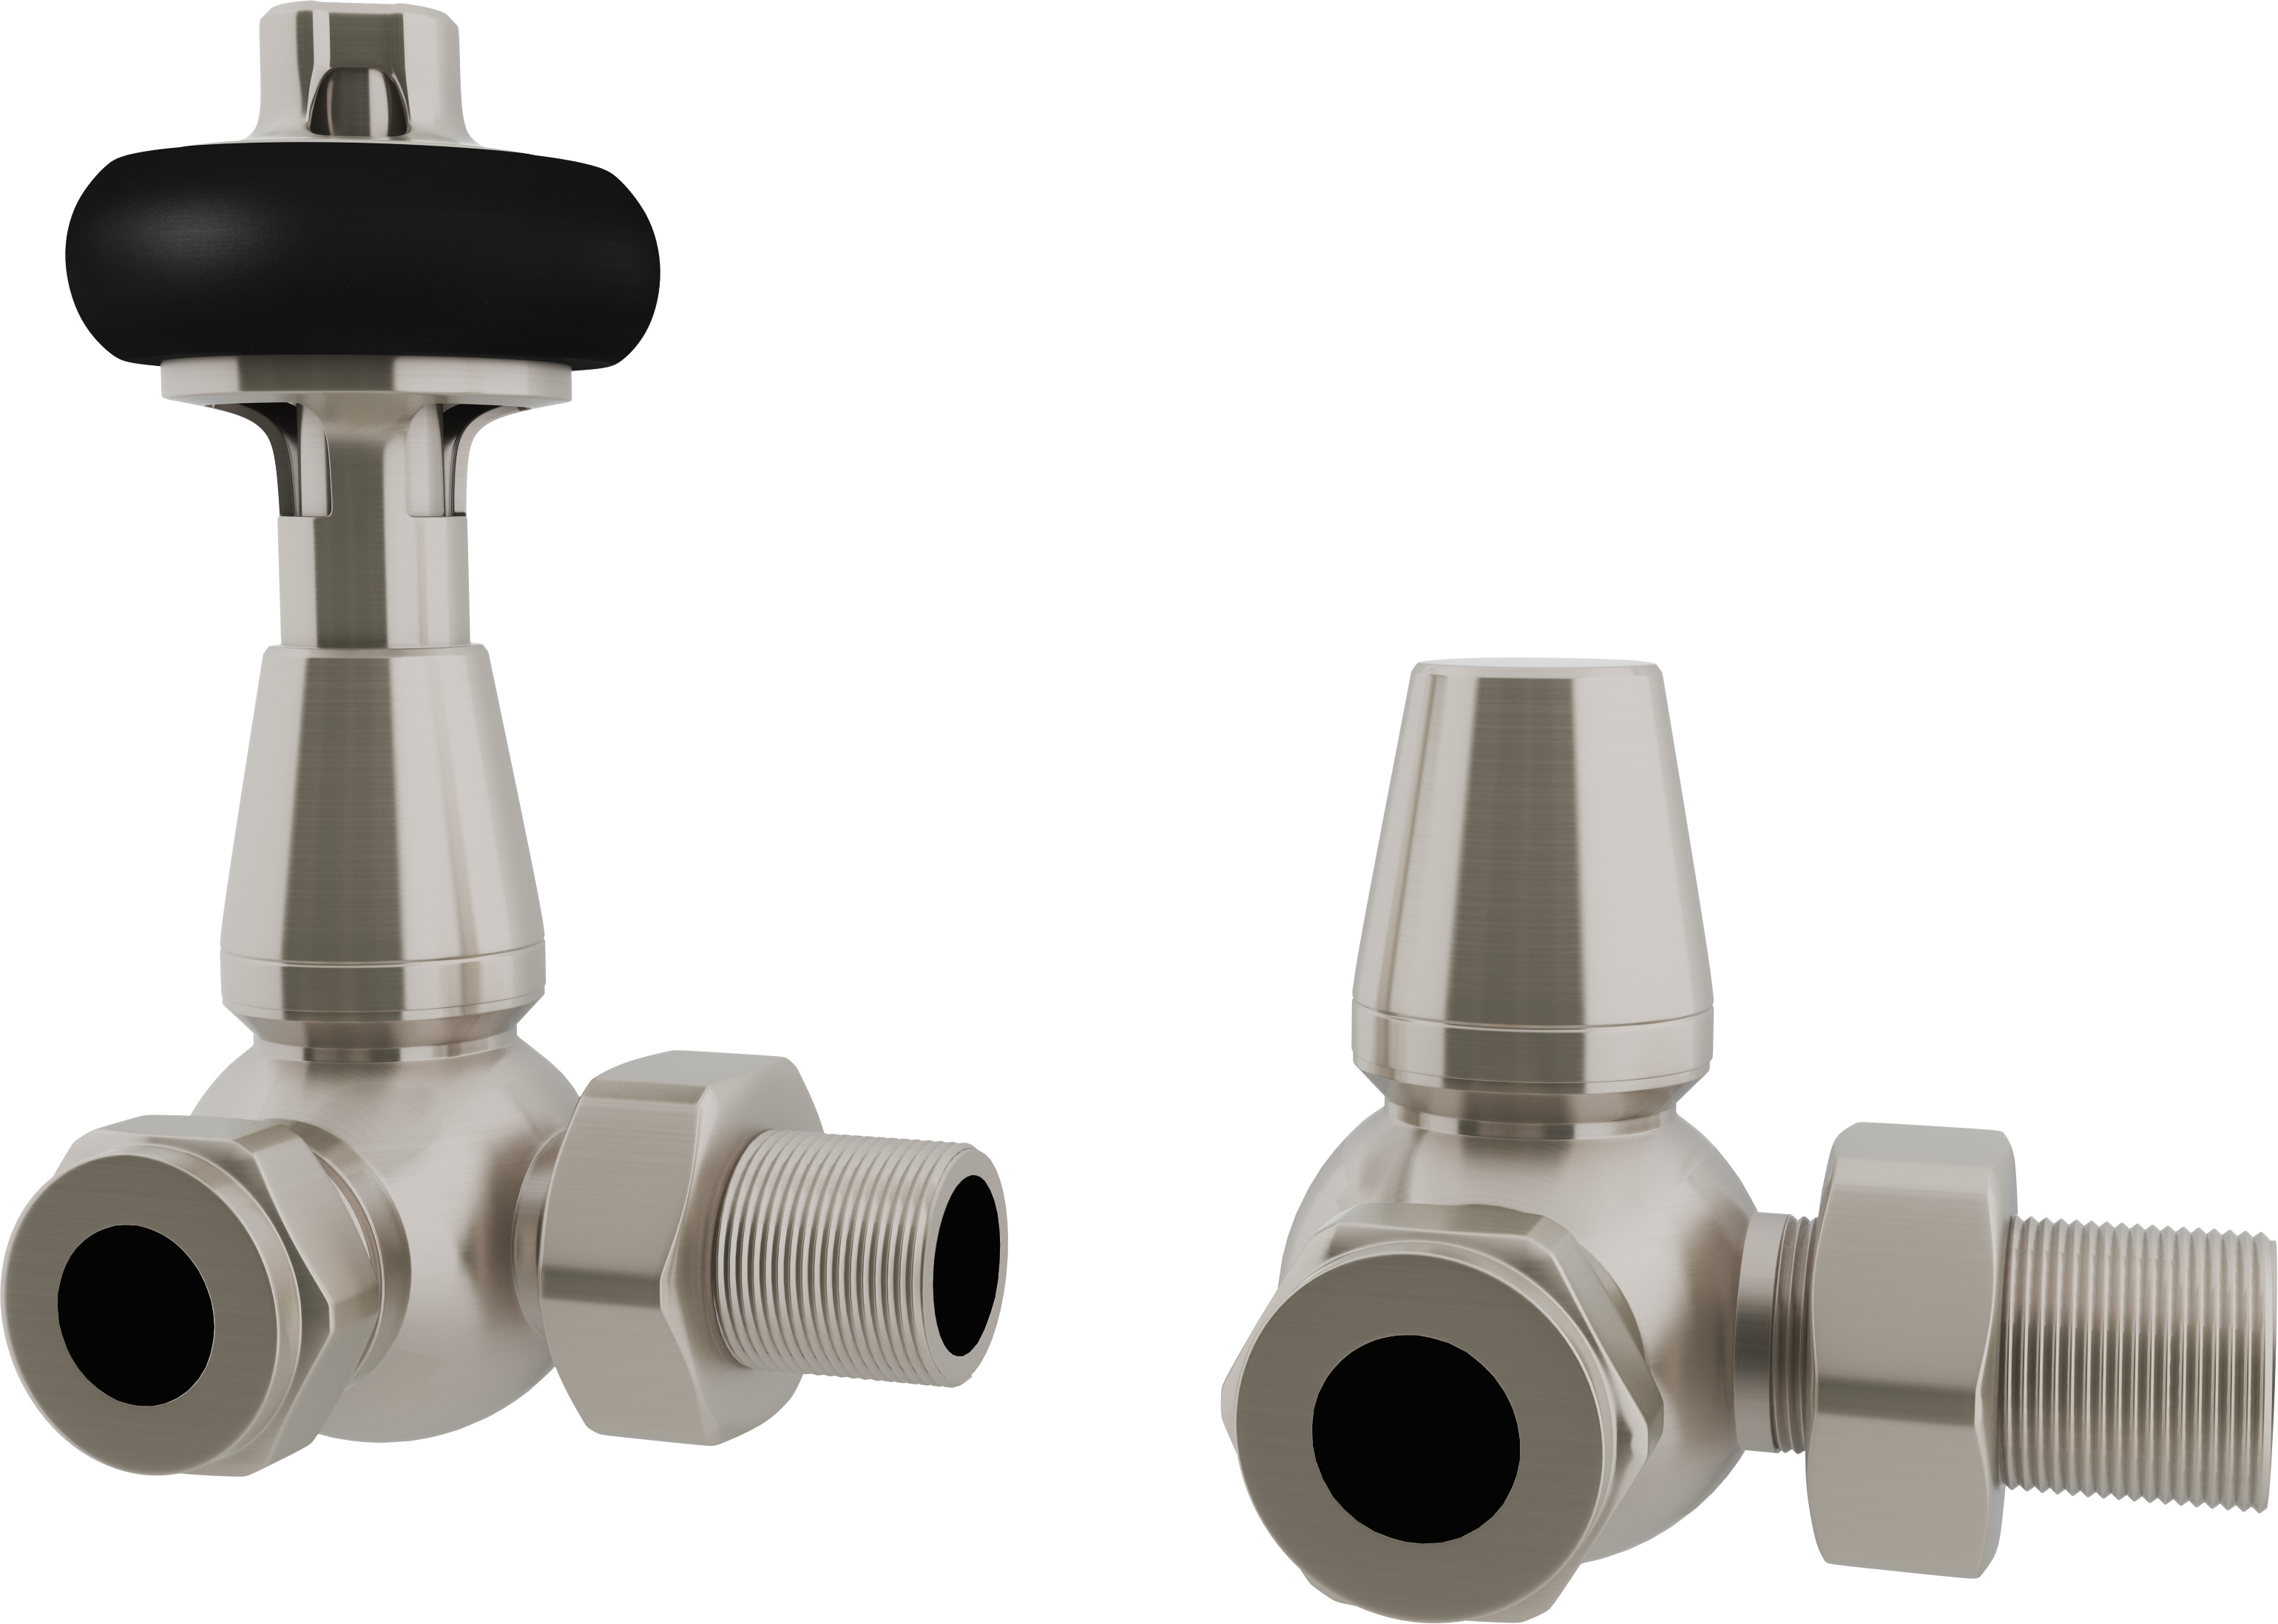 Signature Wooden Head - Silver Nickel Thermostatic Radiator Valves Corner